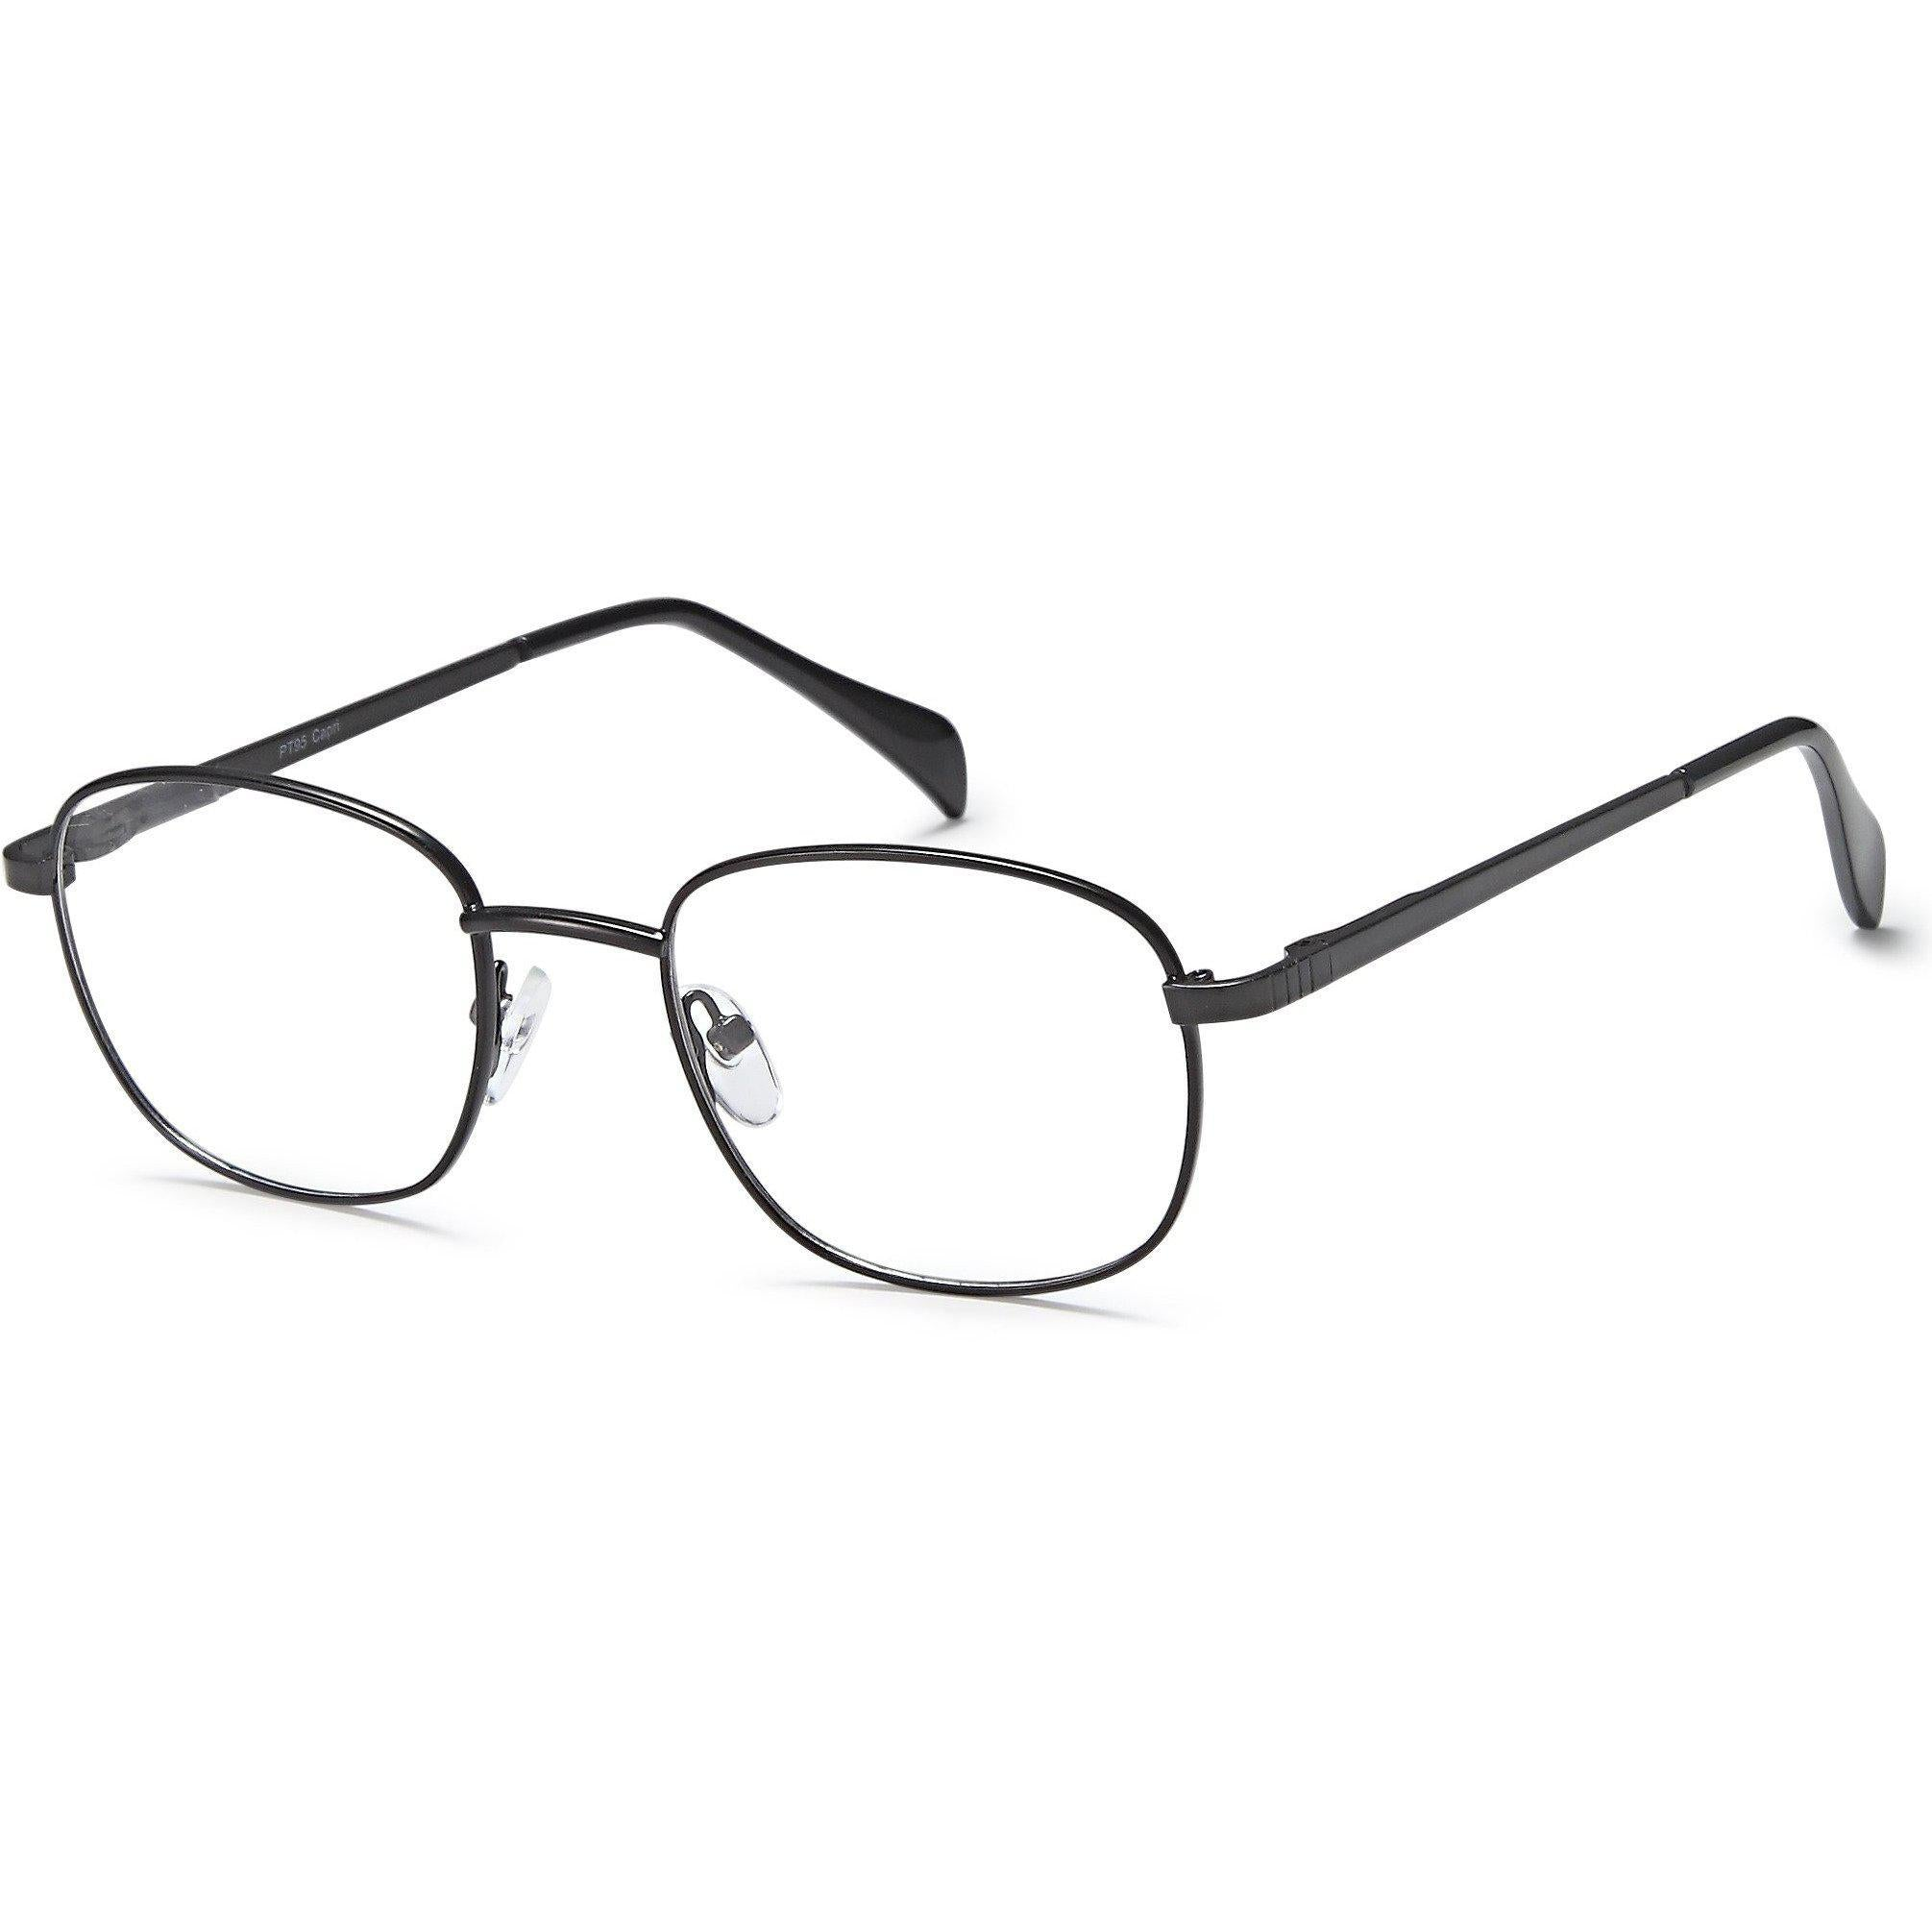 Appletree Prescription Glasses PT 95 Eyeglasses Frame